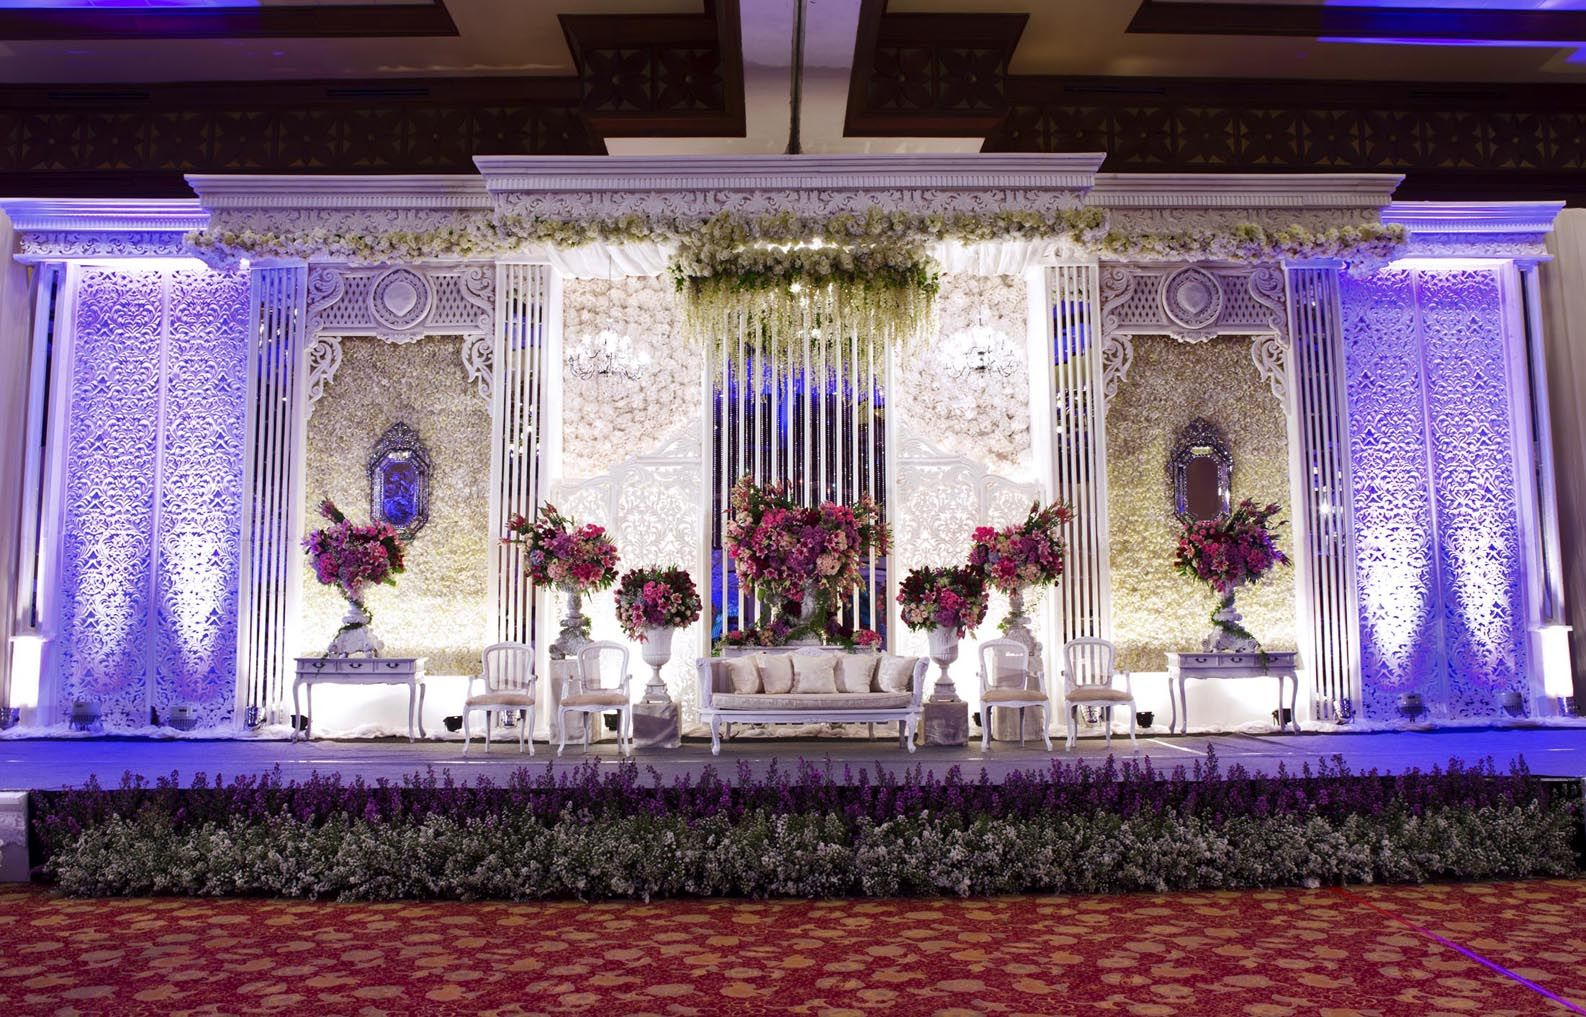 Mawarprada dekorasi pernikahan pelaminan wedding decoration mawarprada dekorasi pernikahan pelaminan wedding decoration romantic purple junglespirit